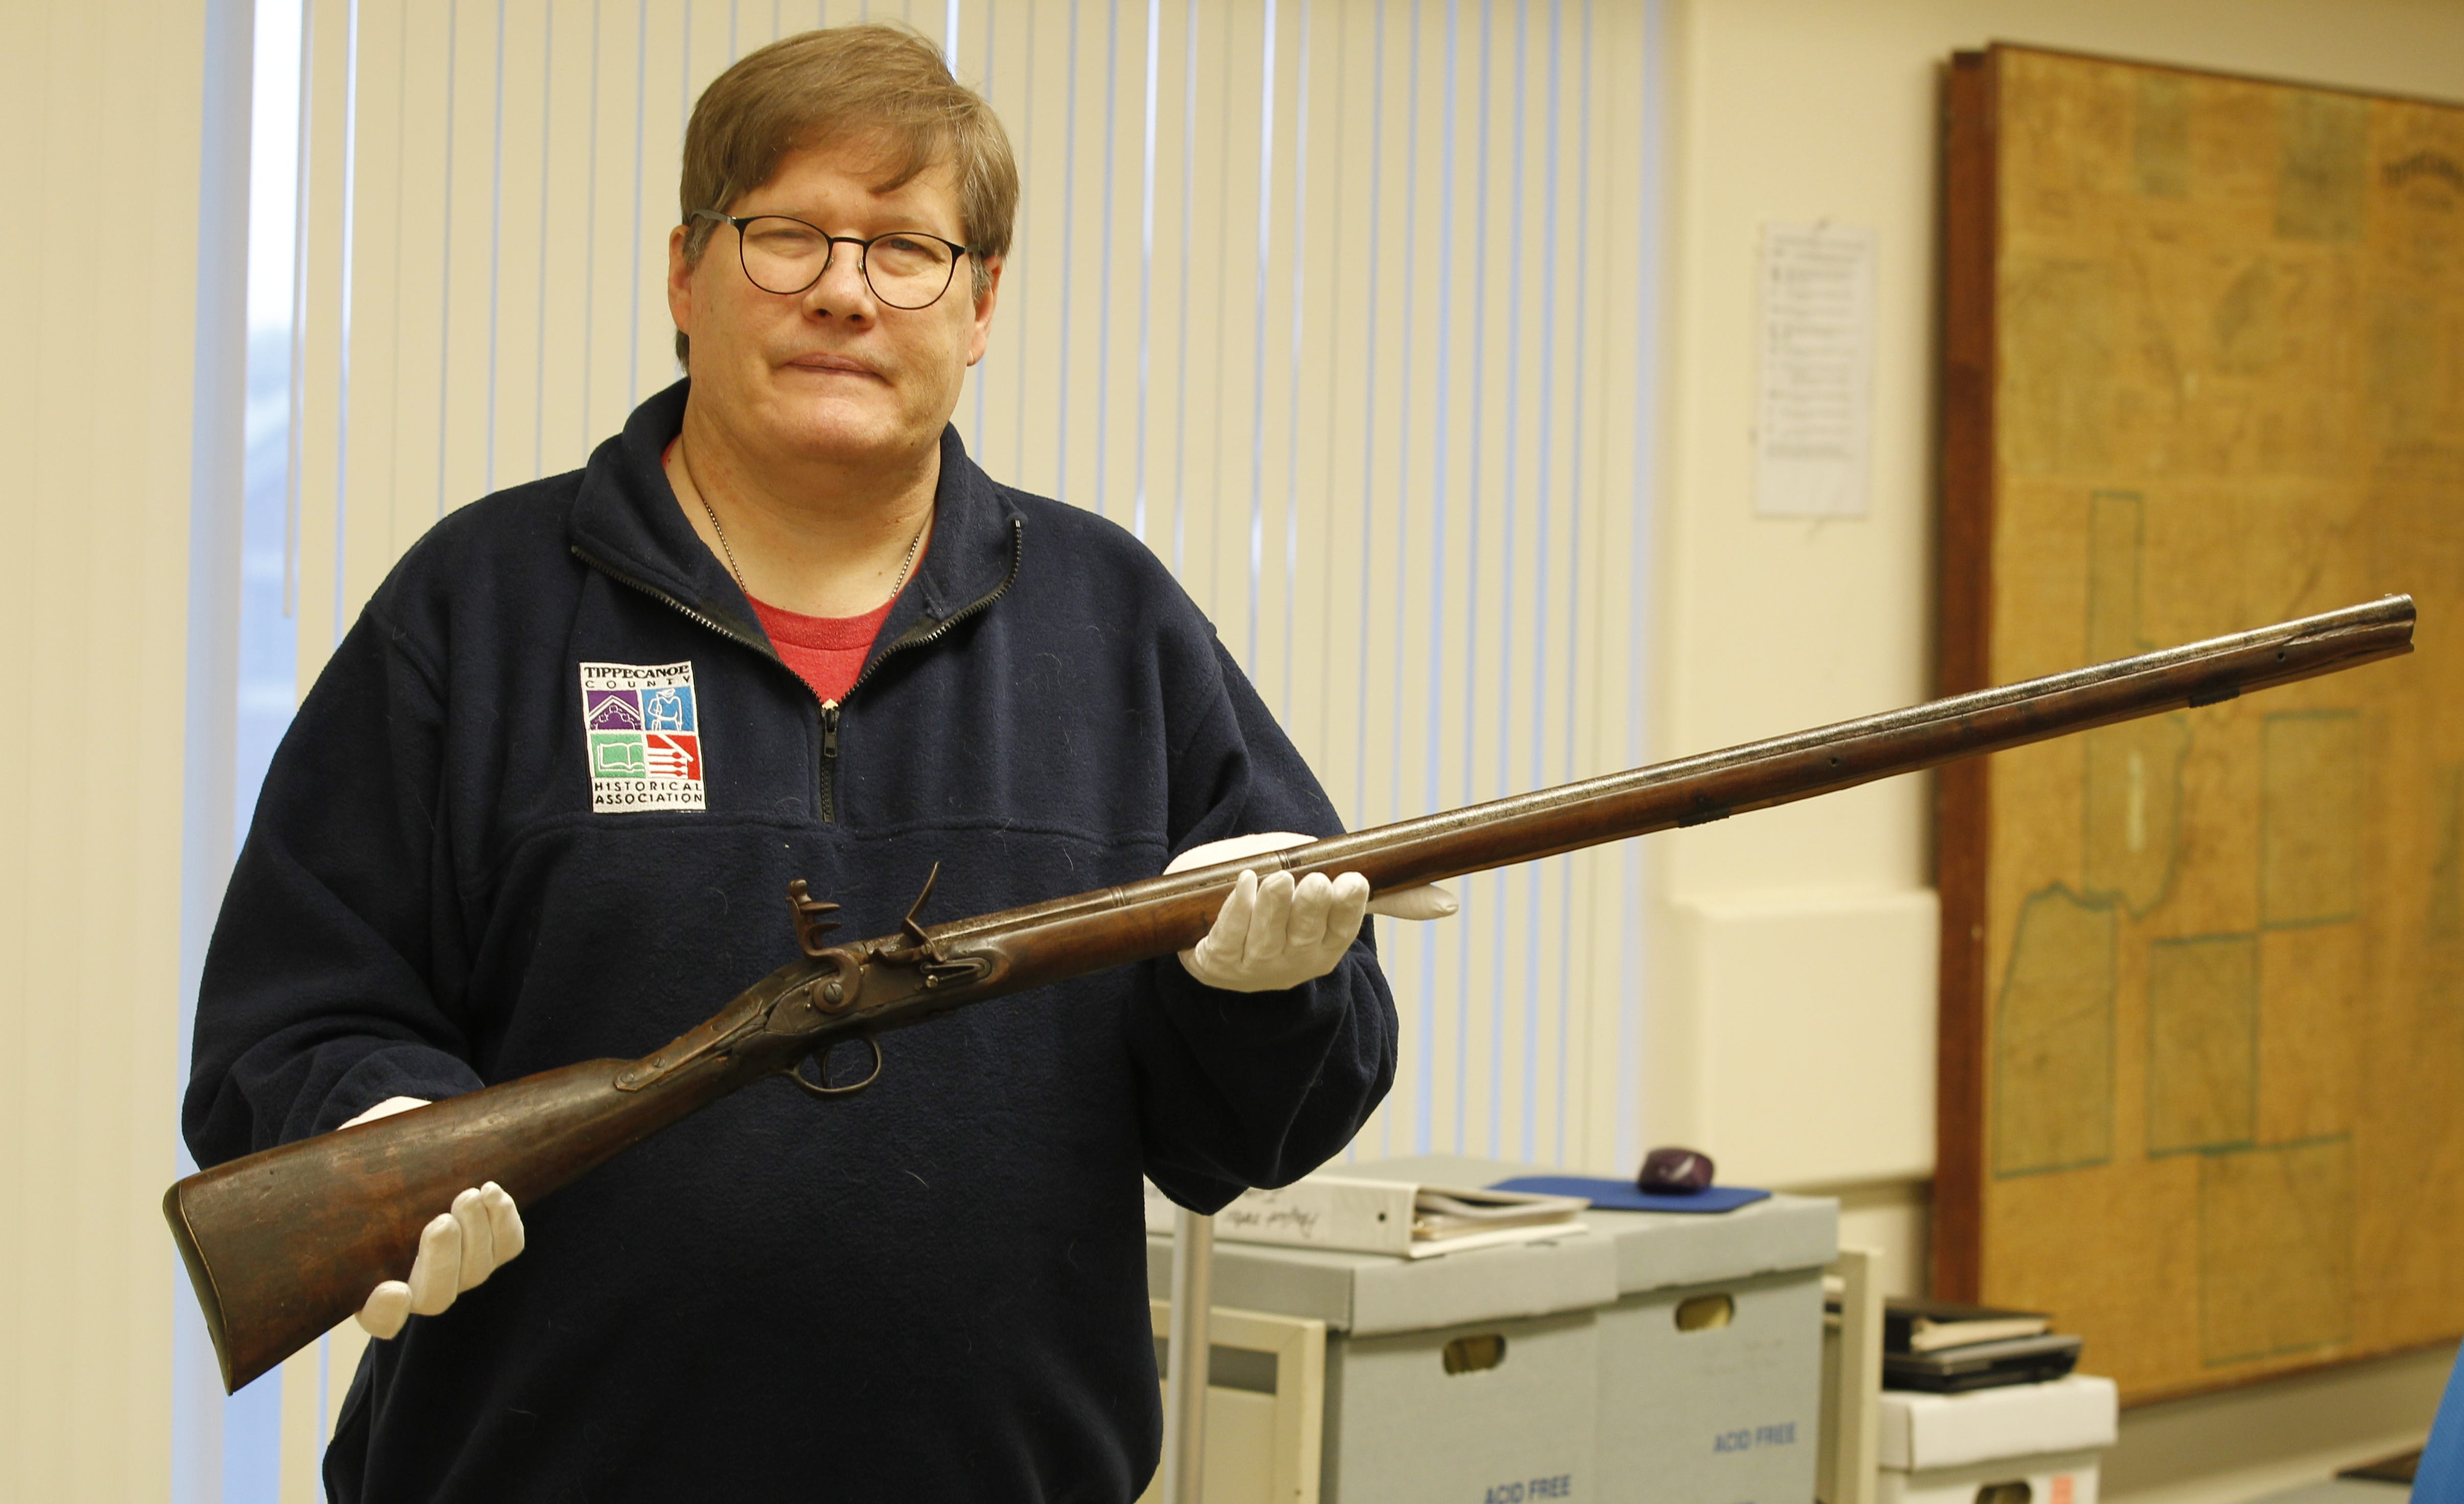 Tippecanoe County Historical Association Executive Director Craig Hadley holds a British trade musket that the association recently received from donors Michael and Amy Molter of Lafayette. The British supplied these weapons to Native Americans before and during the War of 1812 as a way to incite violence on American settlers and soldiers. This particular musket is the type of firearm the Indians used at the Battle of Tippecanoe in November 1811, although there is no way of knowing whether this piece was at that battle.